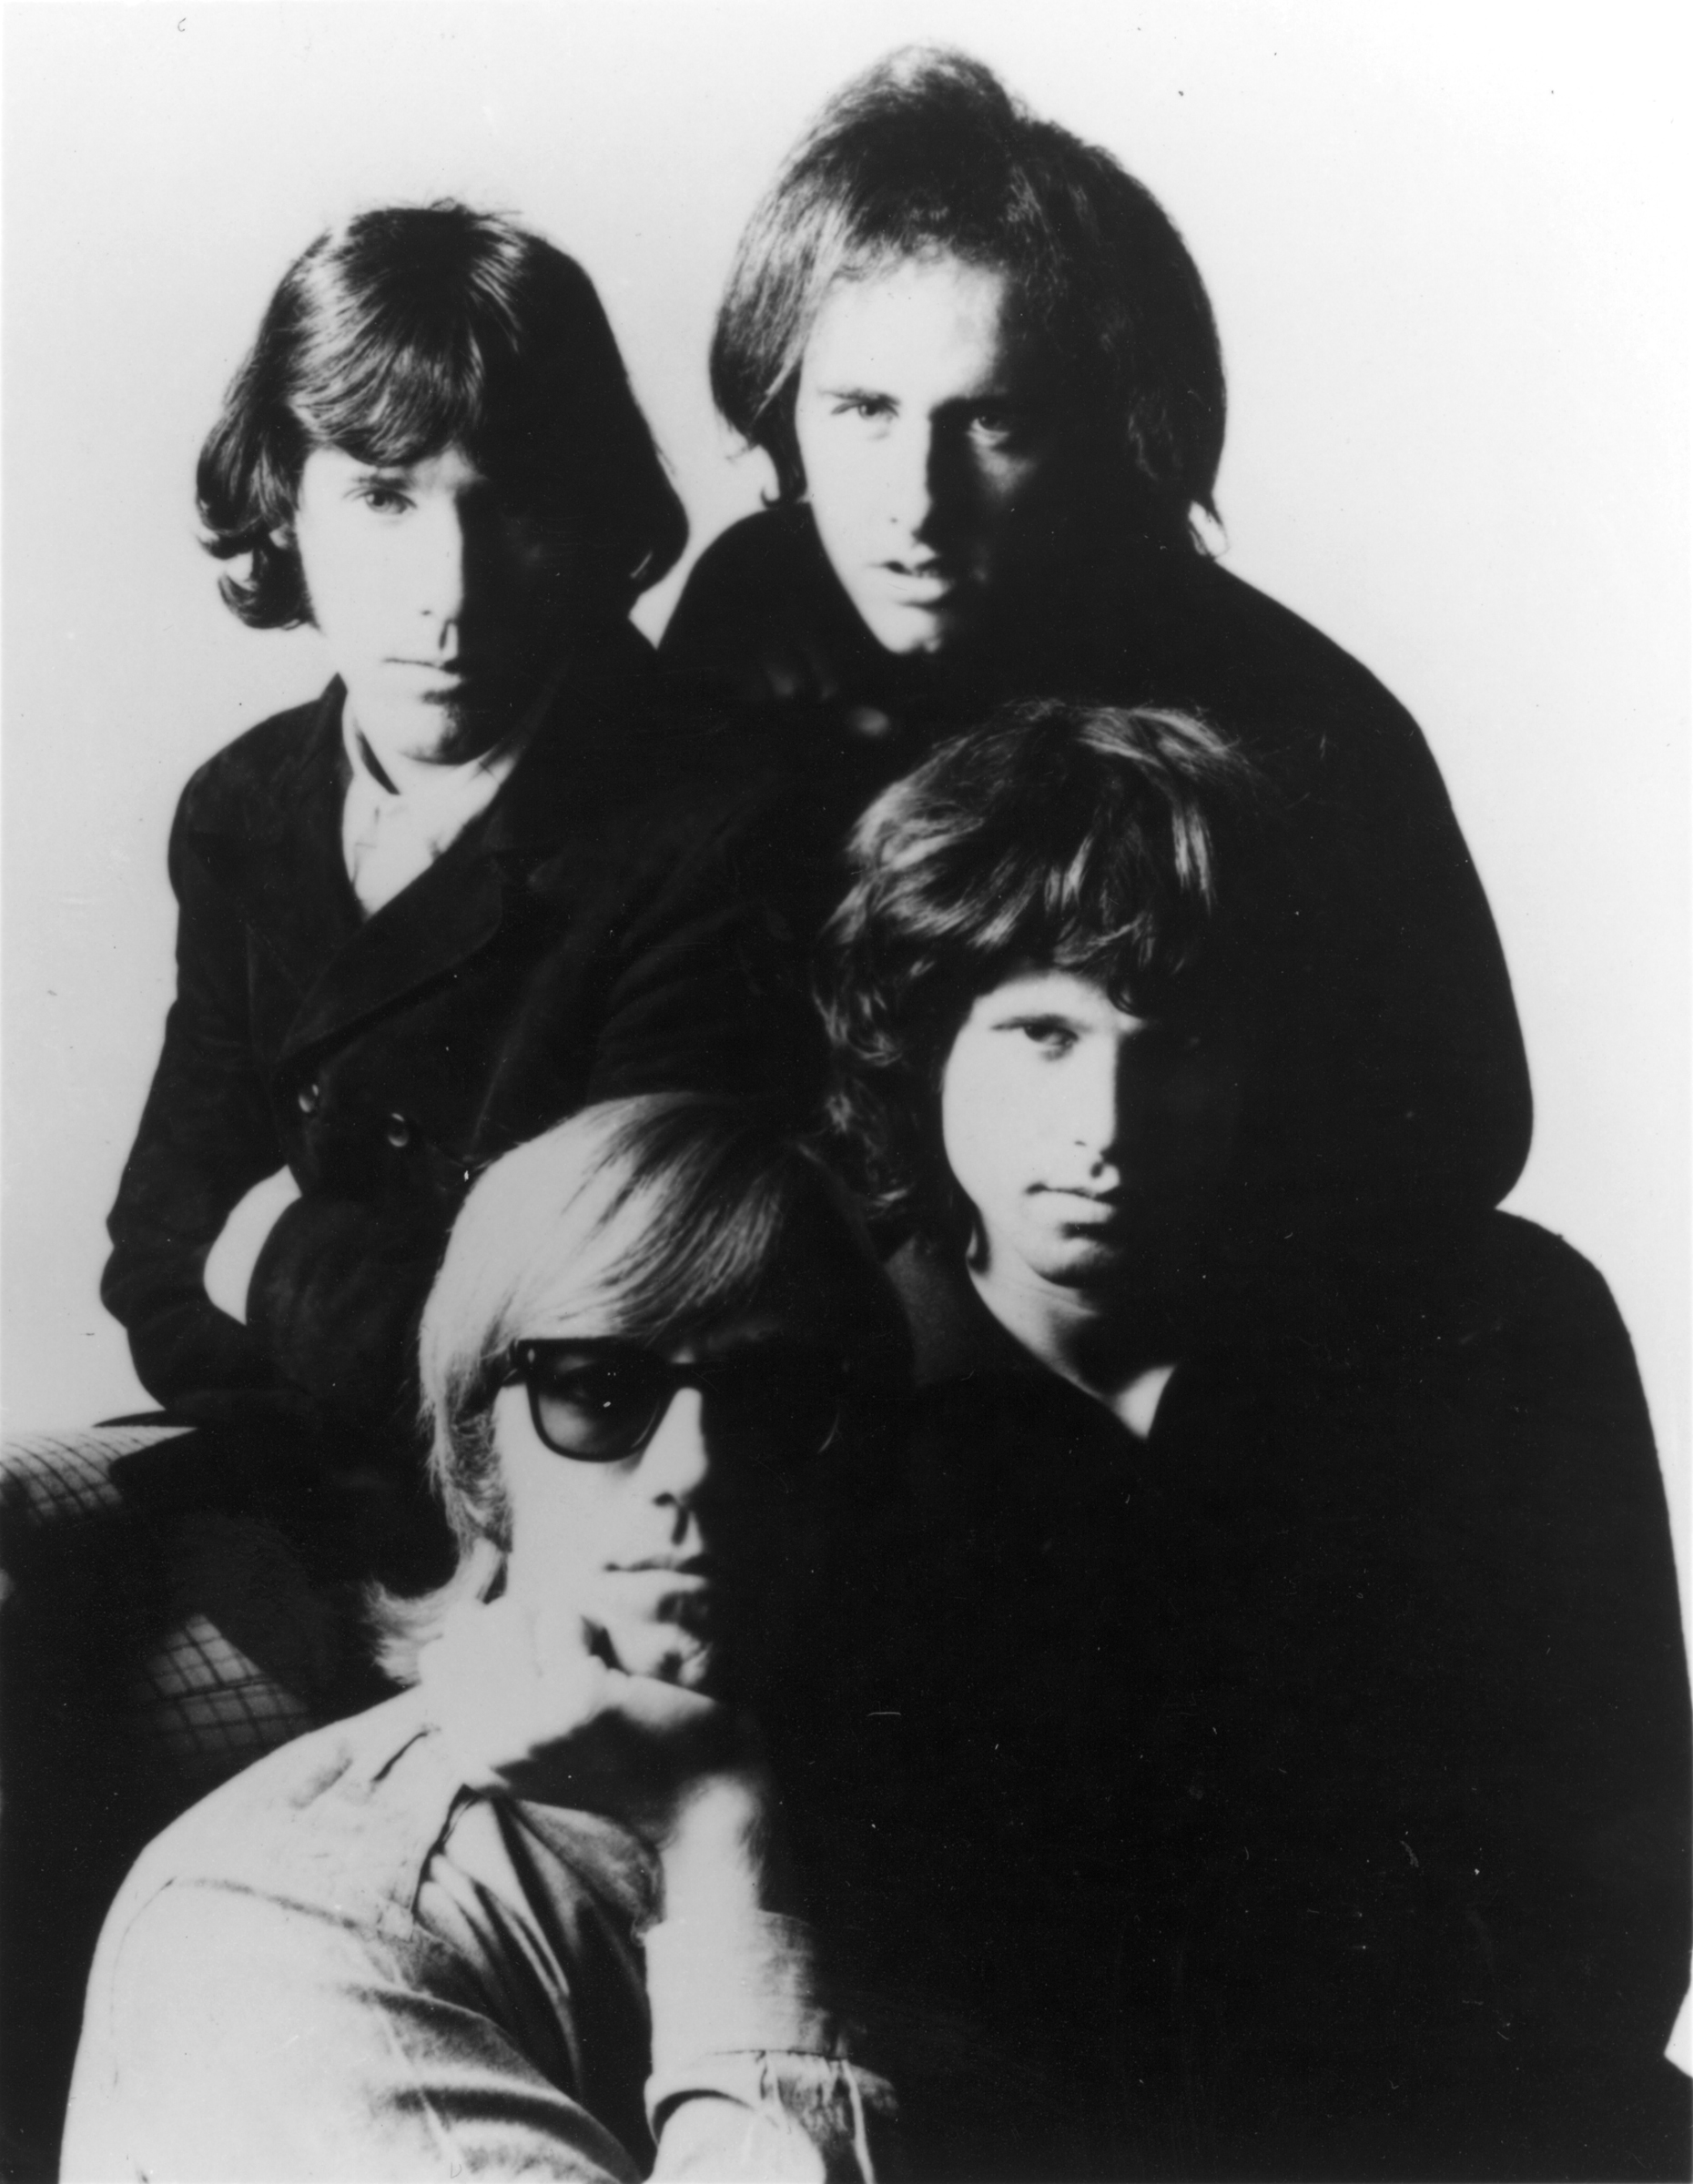 And the Doors Jim Morrison